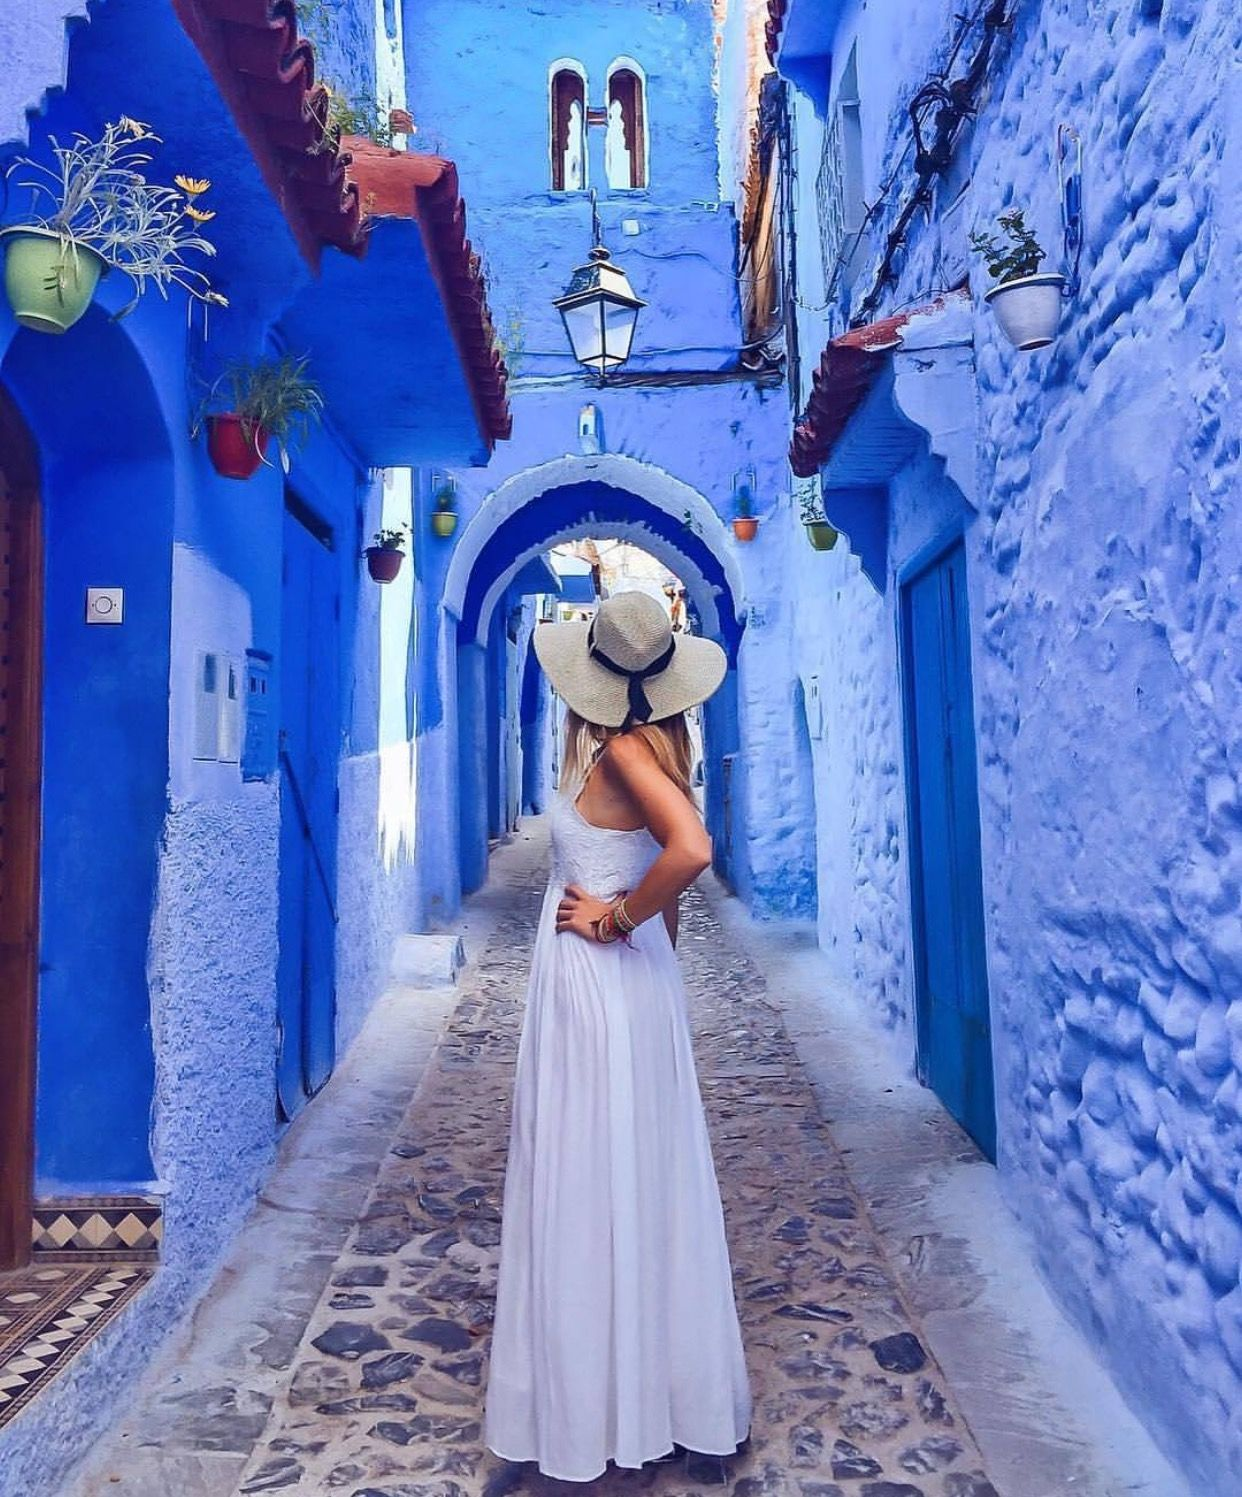 Pin by Jacqueline Knowles on Vibrance Chefchaouen, Morocco